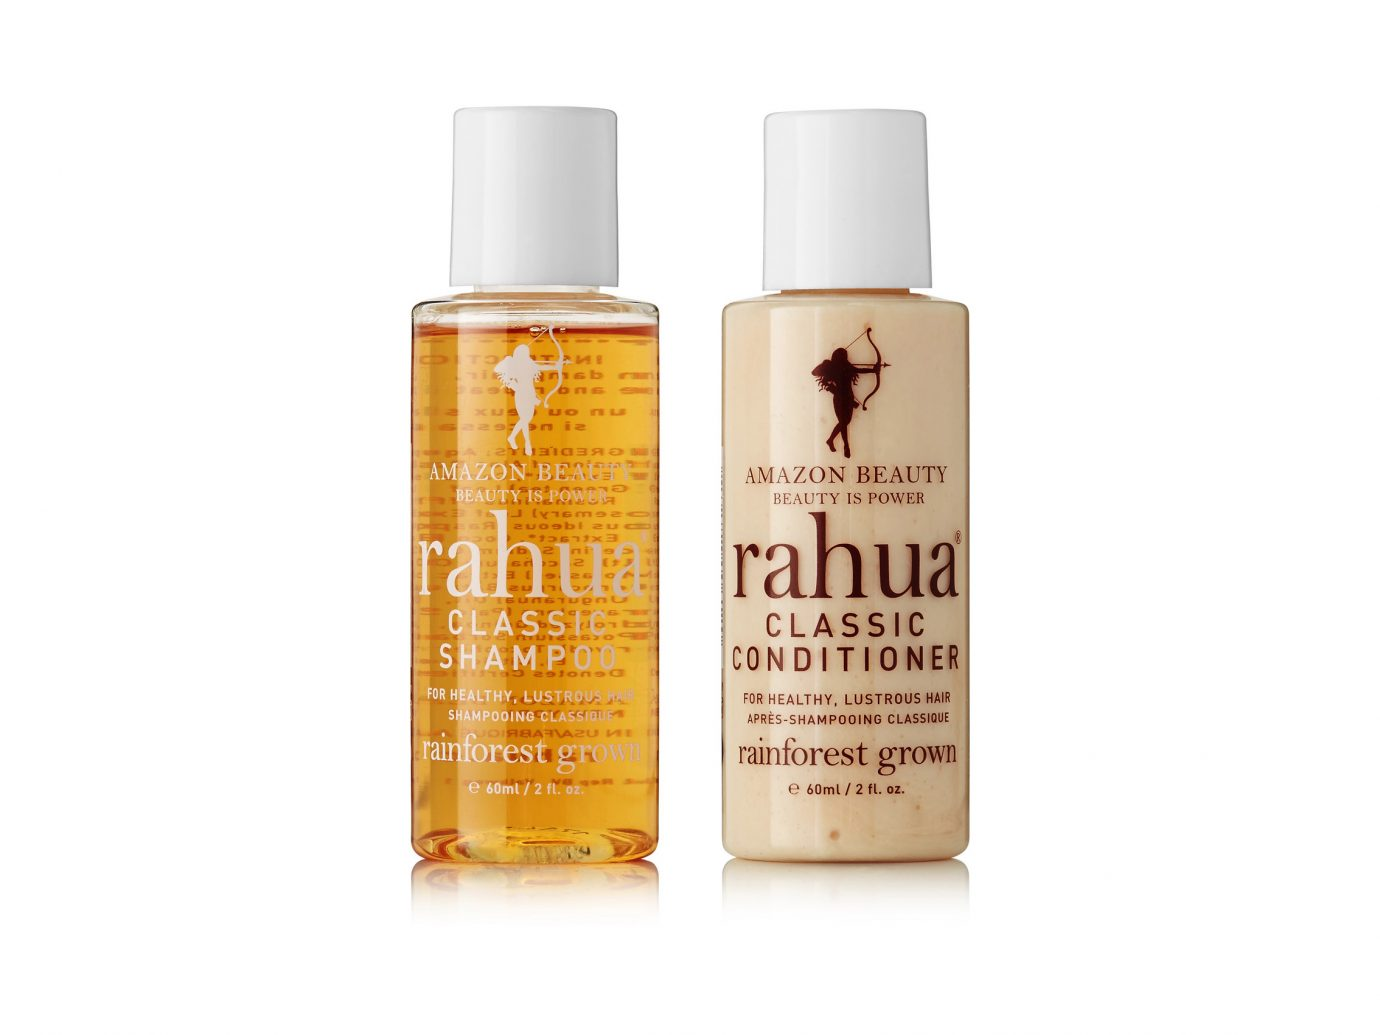 Rahua Classic Jet Setter Travel Duo